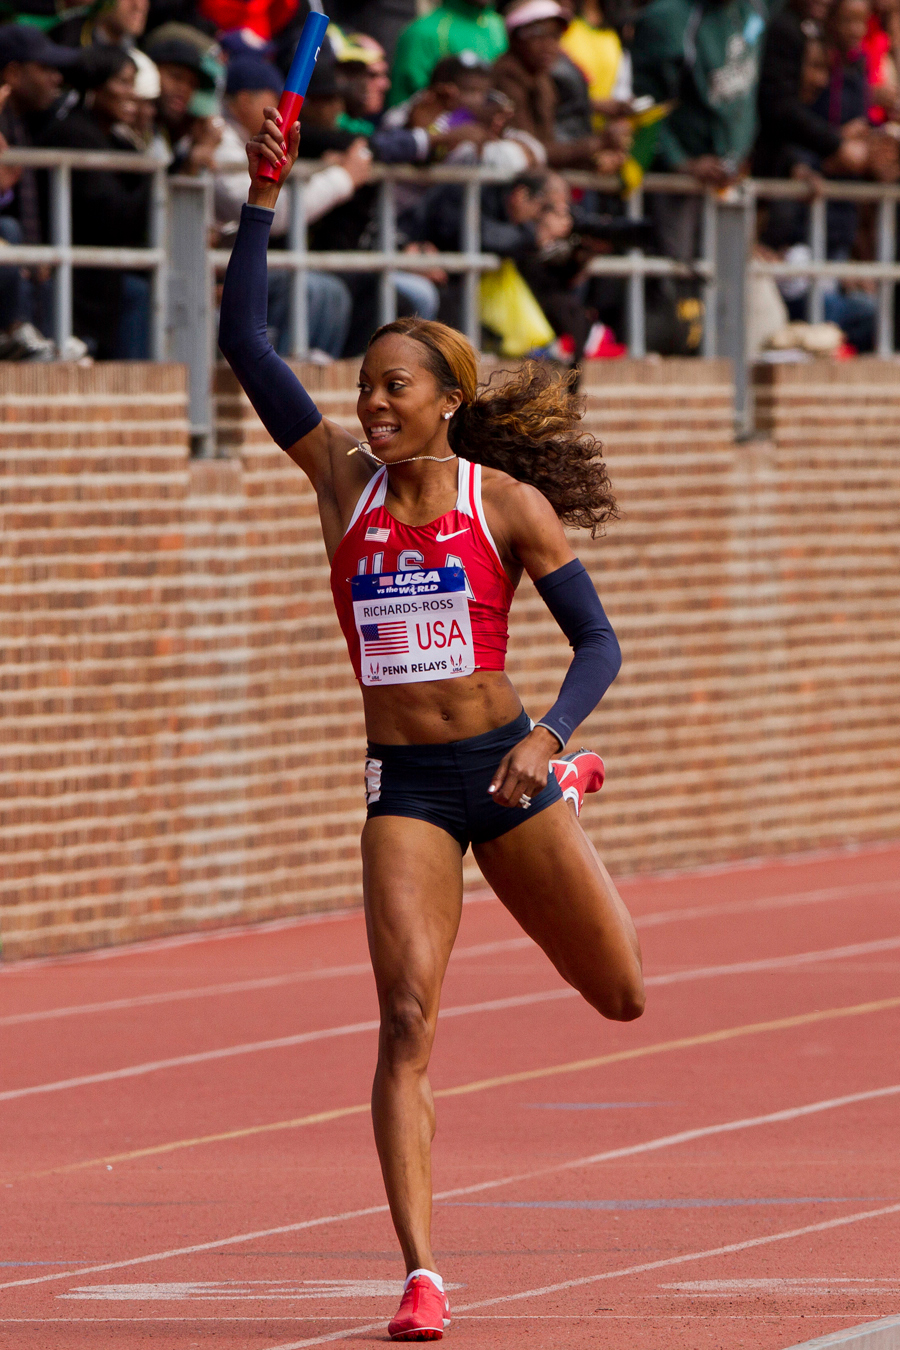 Olympic 400m gold medalist Sanya Richards-Ross anchors the USA Red team to victory in the Olympic Developmental Women's 4x400m relay.